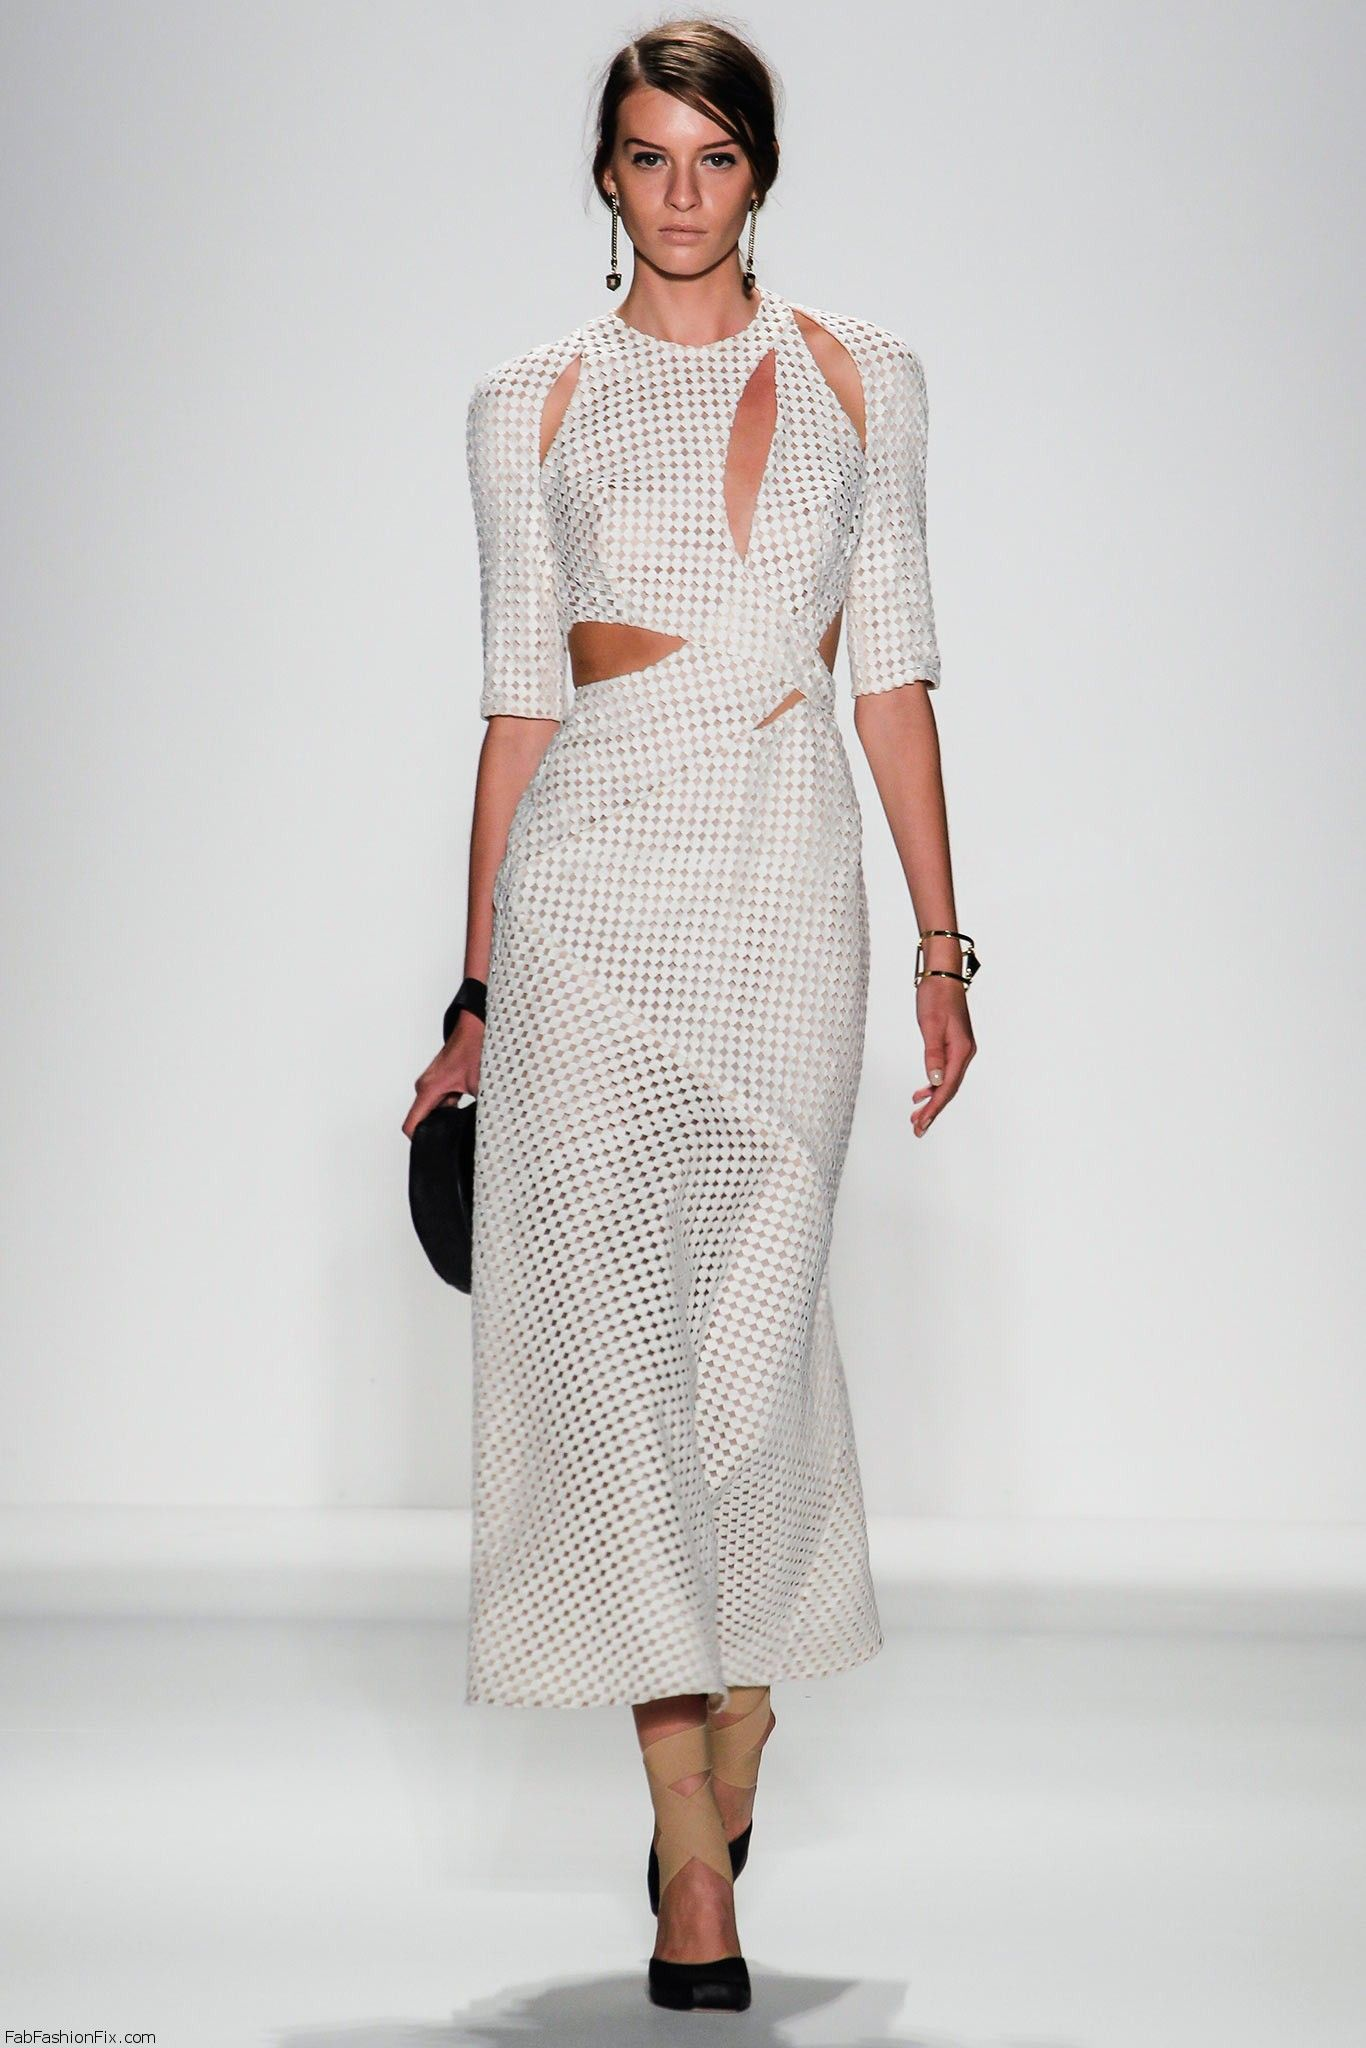 Zimmermann Spring/Summer 2014